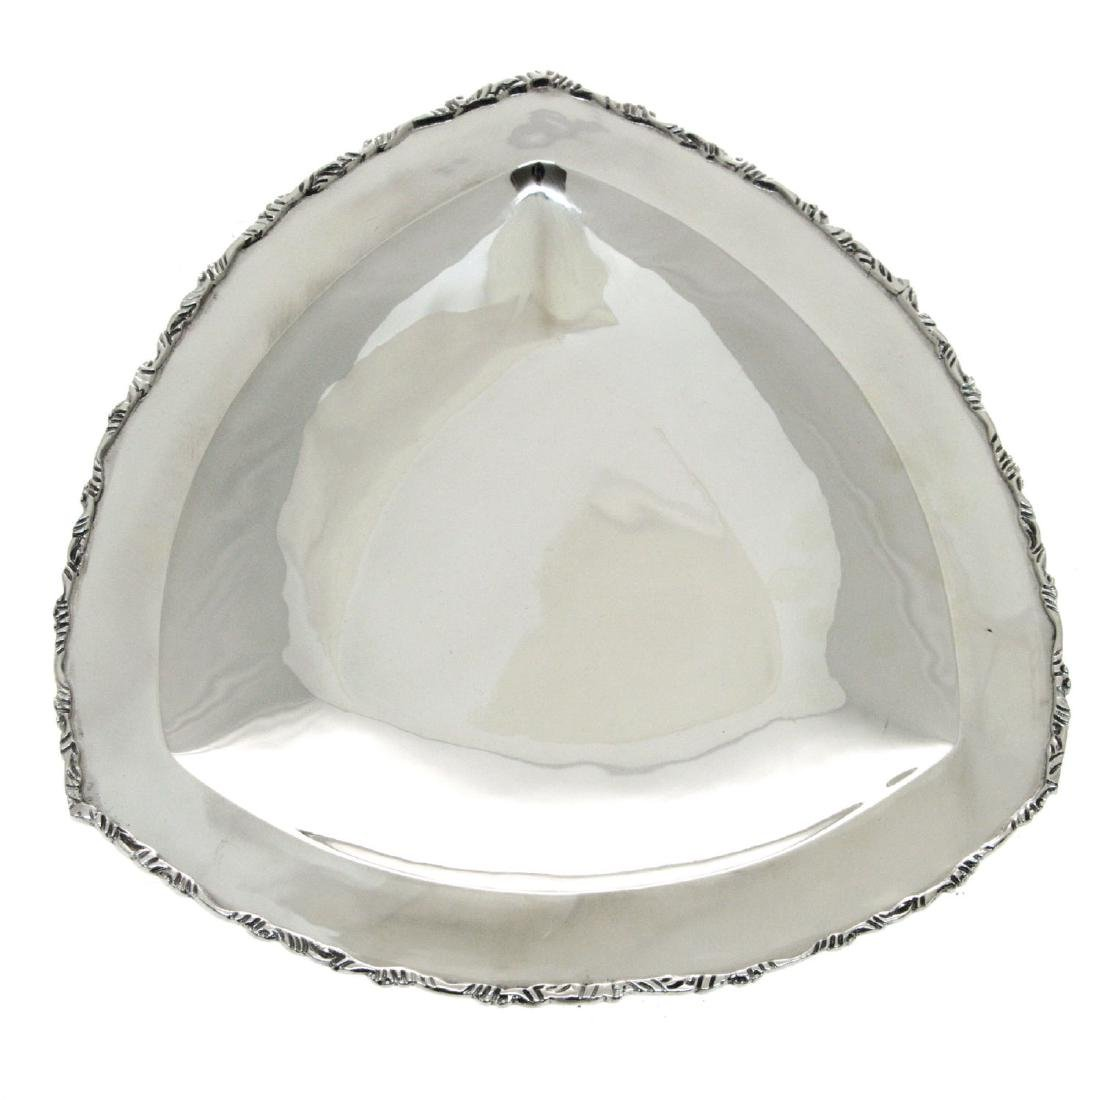 Sterling Silver Serving Tray Bowl.